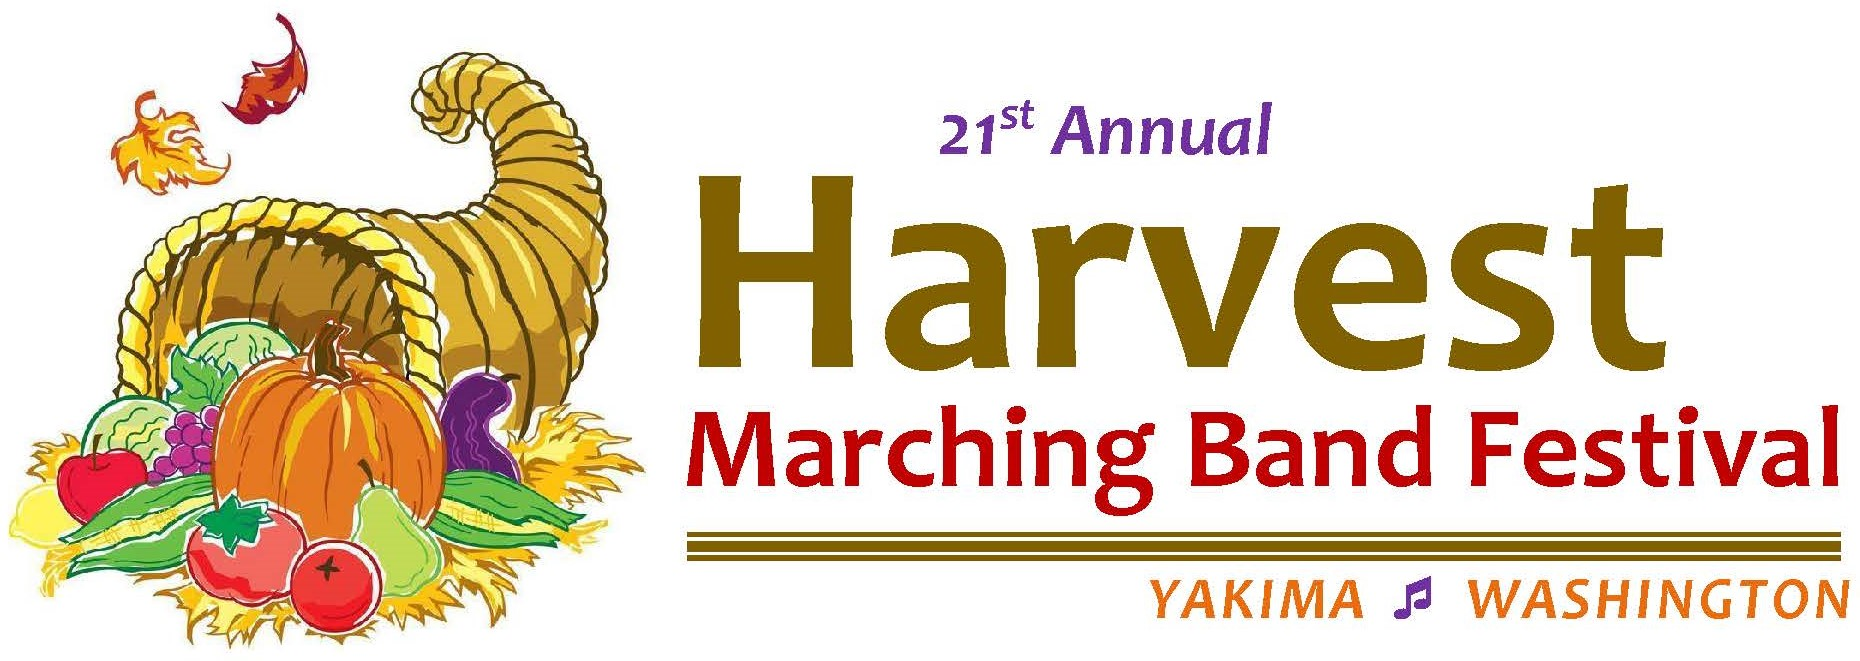 The Harvest Marching Band Festival Logo